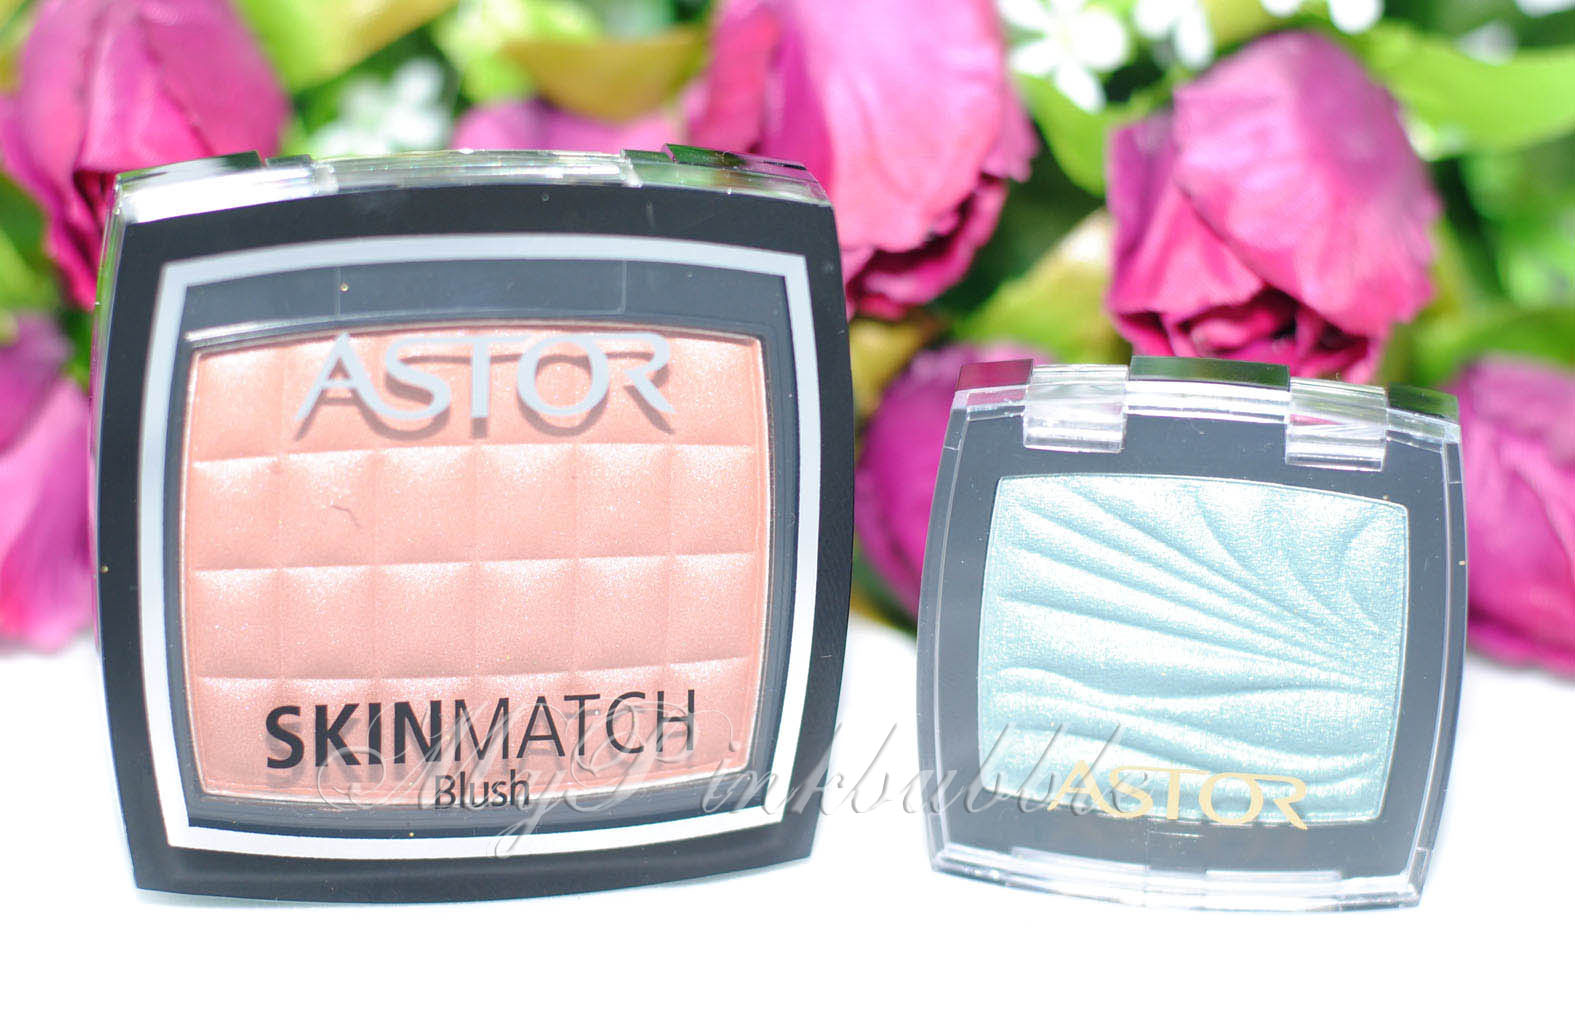 astor blush skinmatch colorwaves